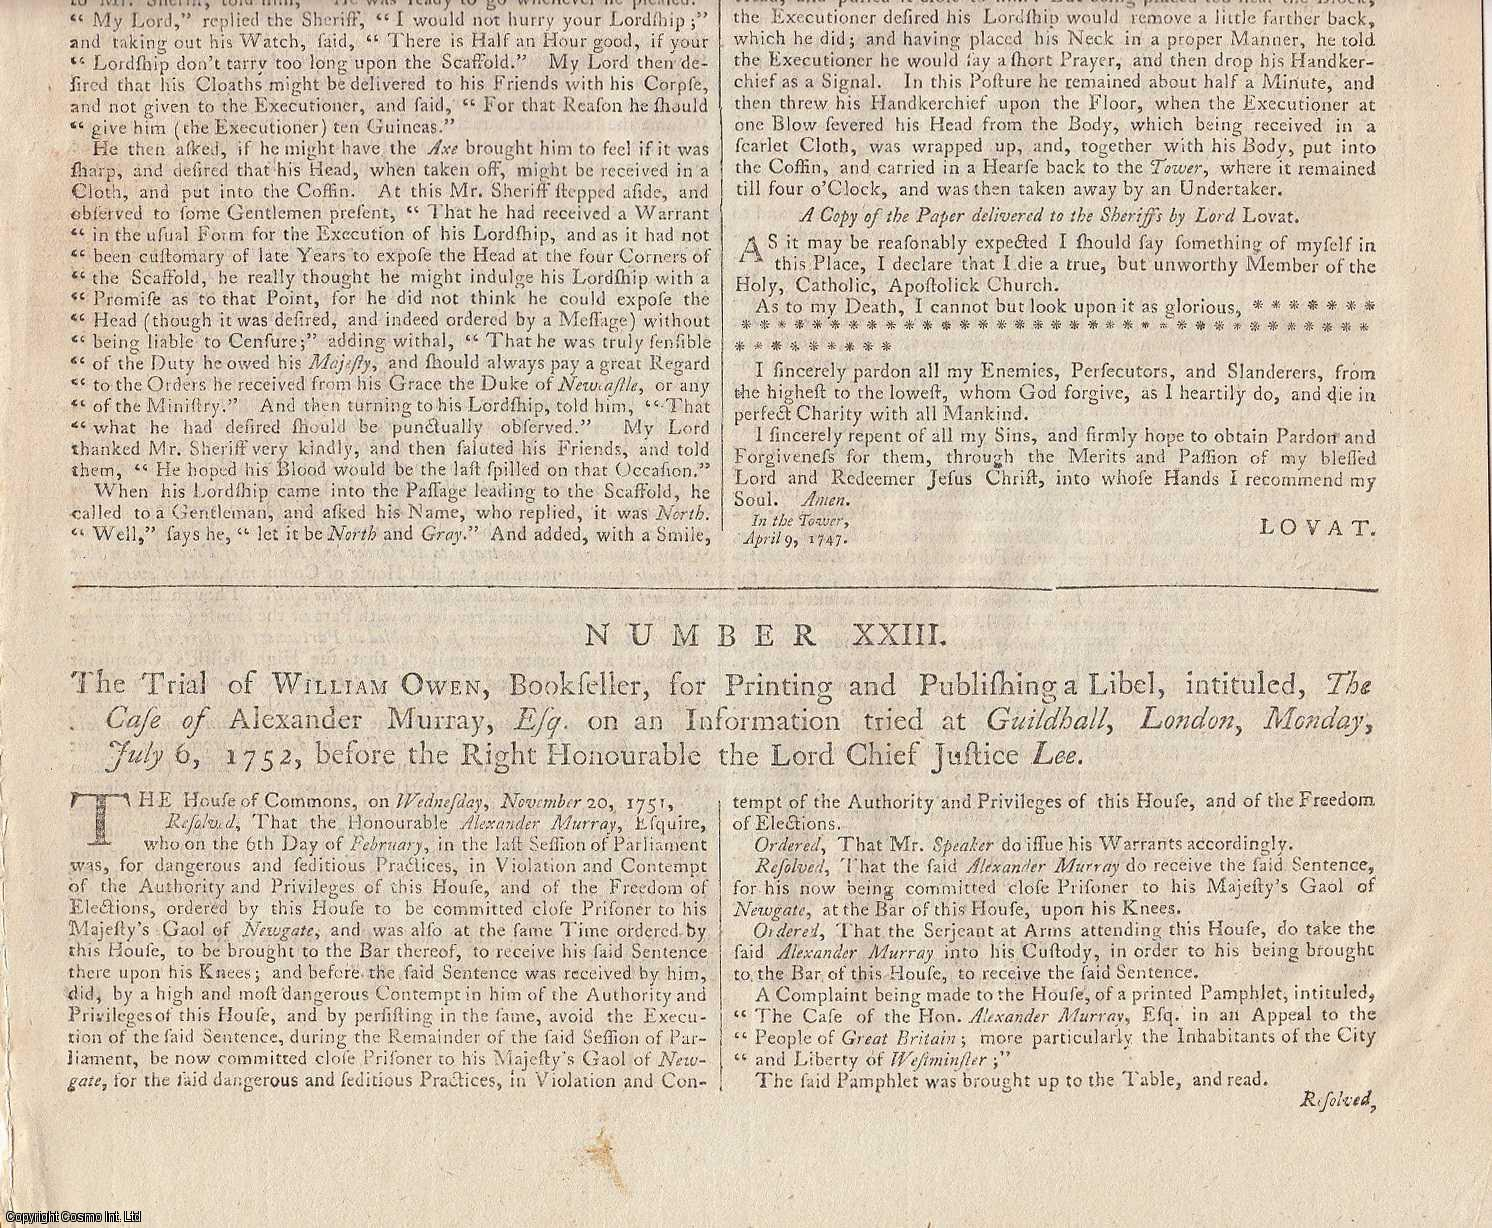 BOOKSELLER LIBEL.  The Trial of William Owen, Bookseller, for Printing and Publishing a Libel, intituled, The Case of Alexander Murray, Esq. on an Information tried at Guildhall, London, Monday, July 6, 1752, before the Right Honourable the Lord Chief Justice Lee., [Trial].